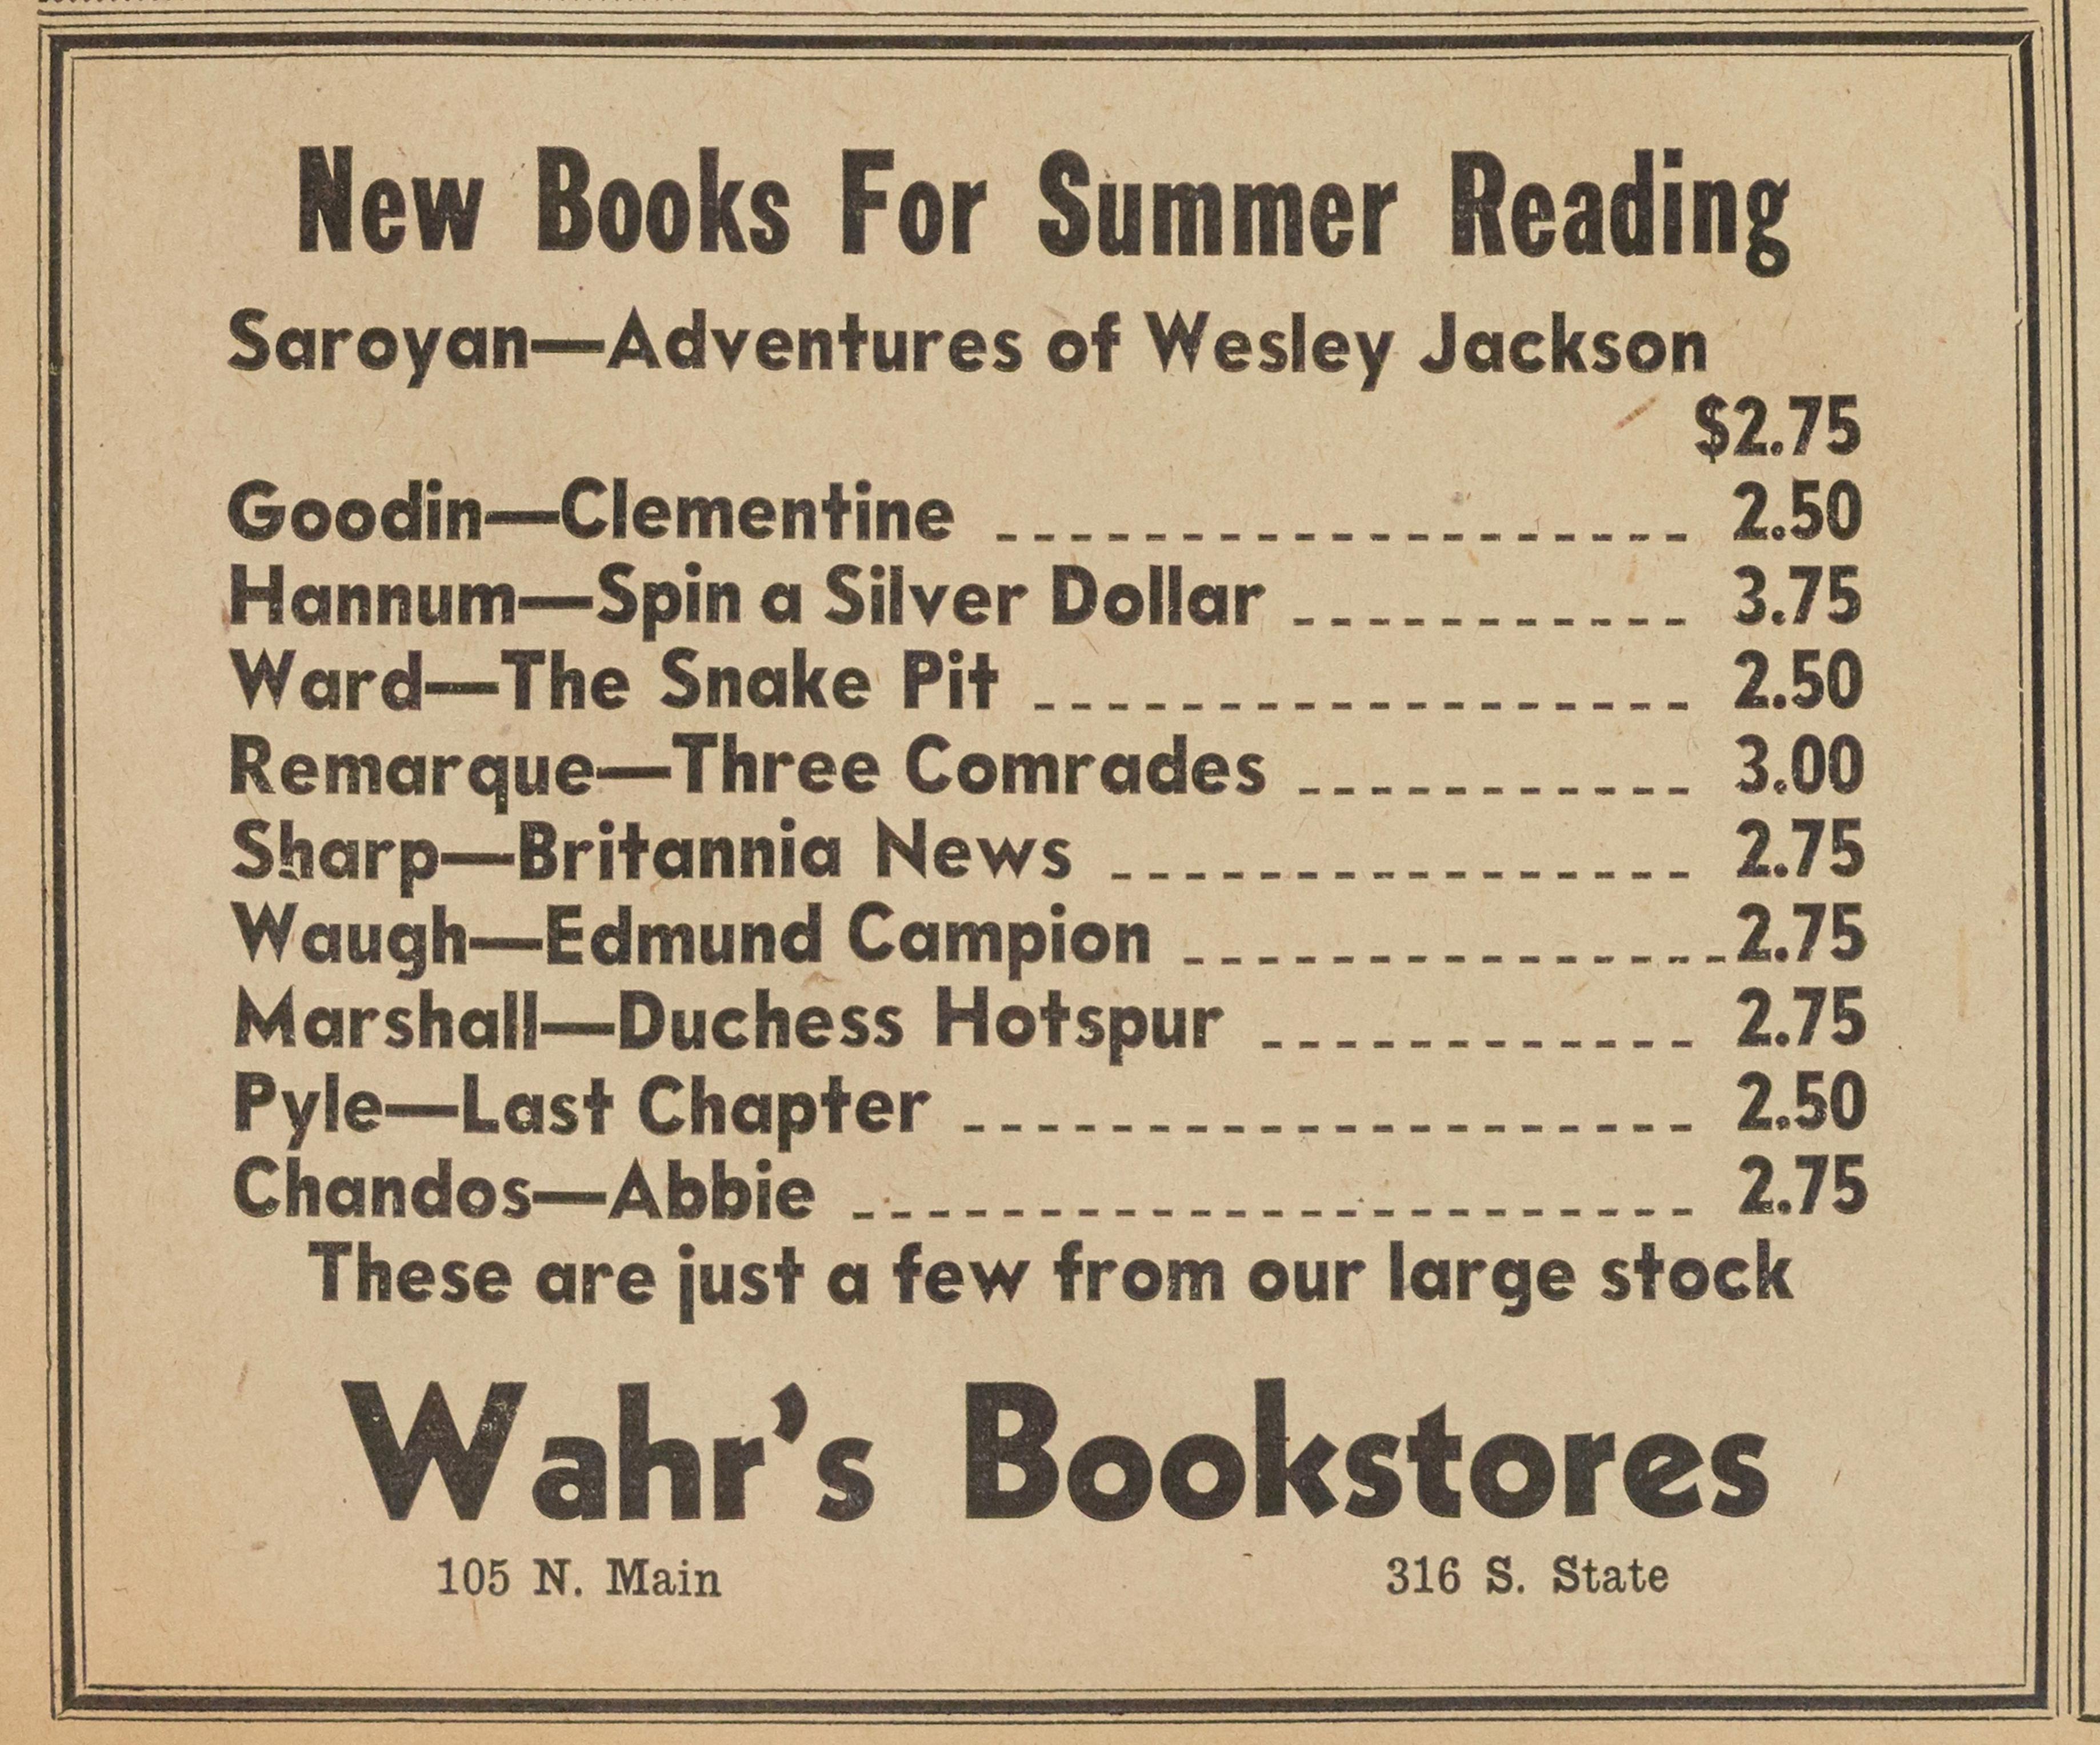 Wahr's Bookstores image